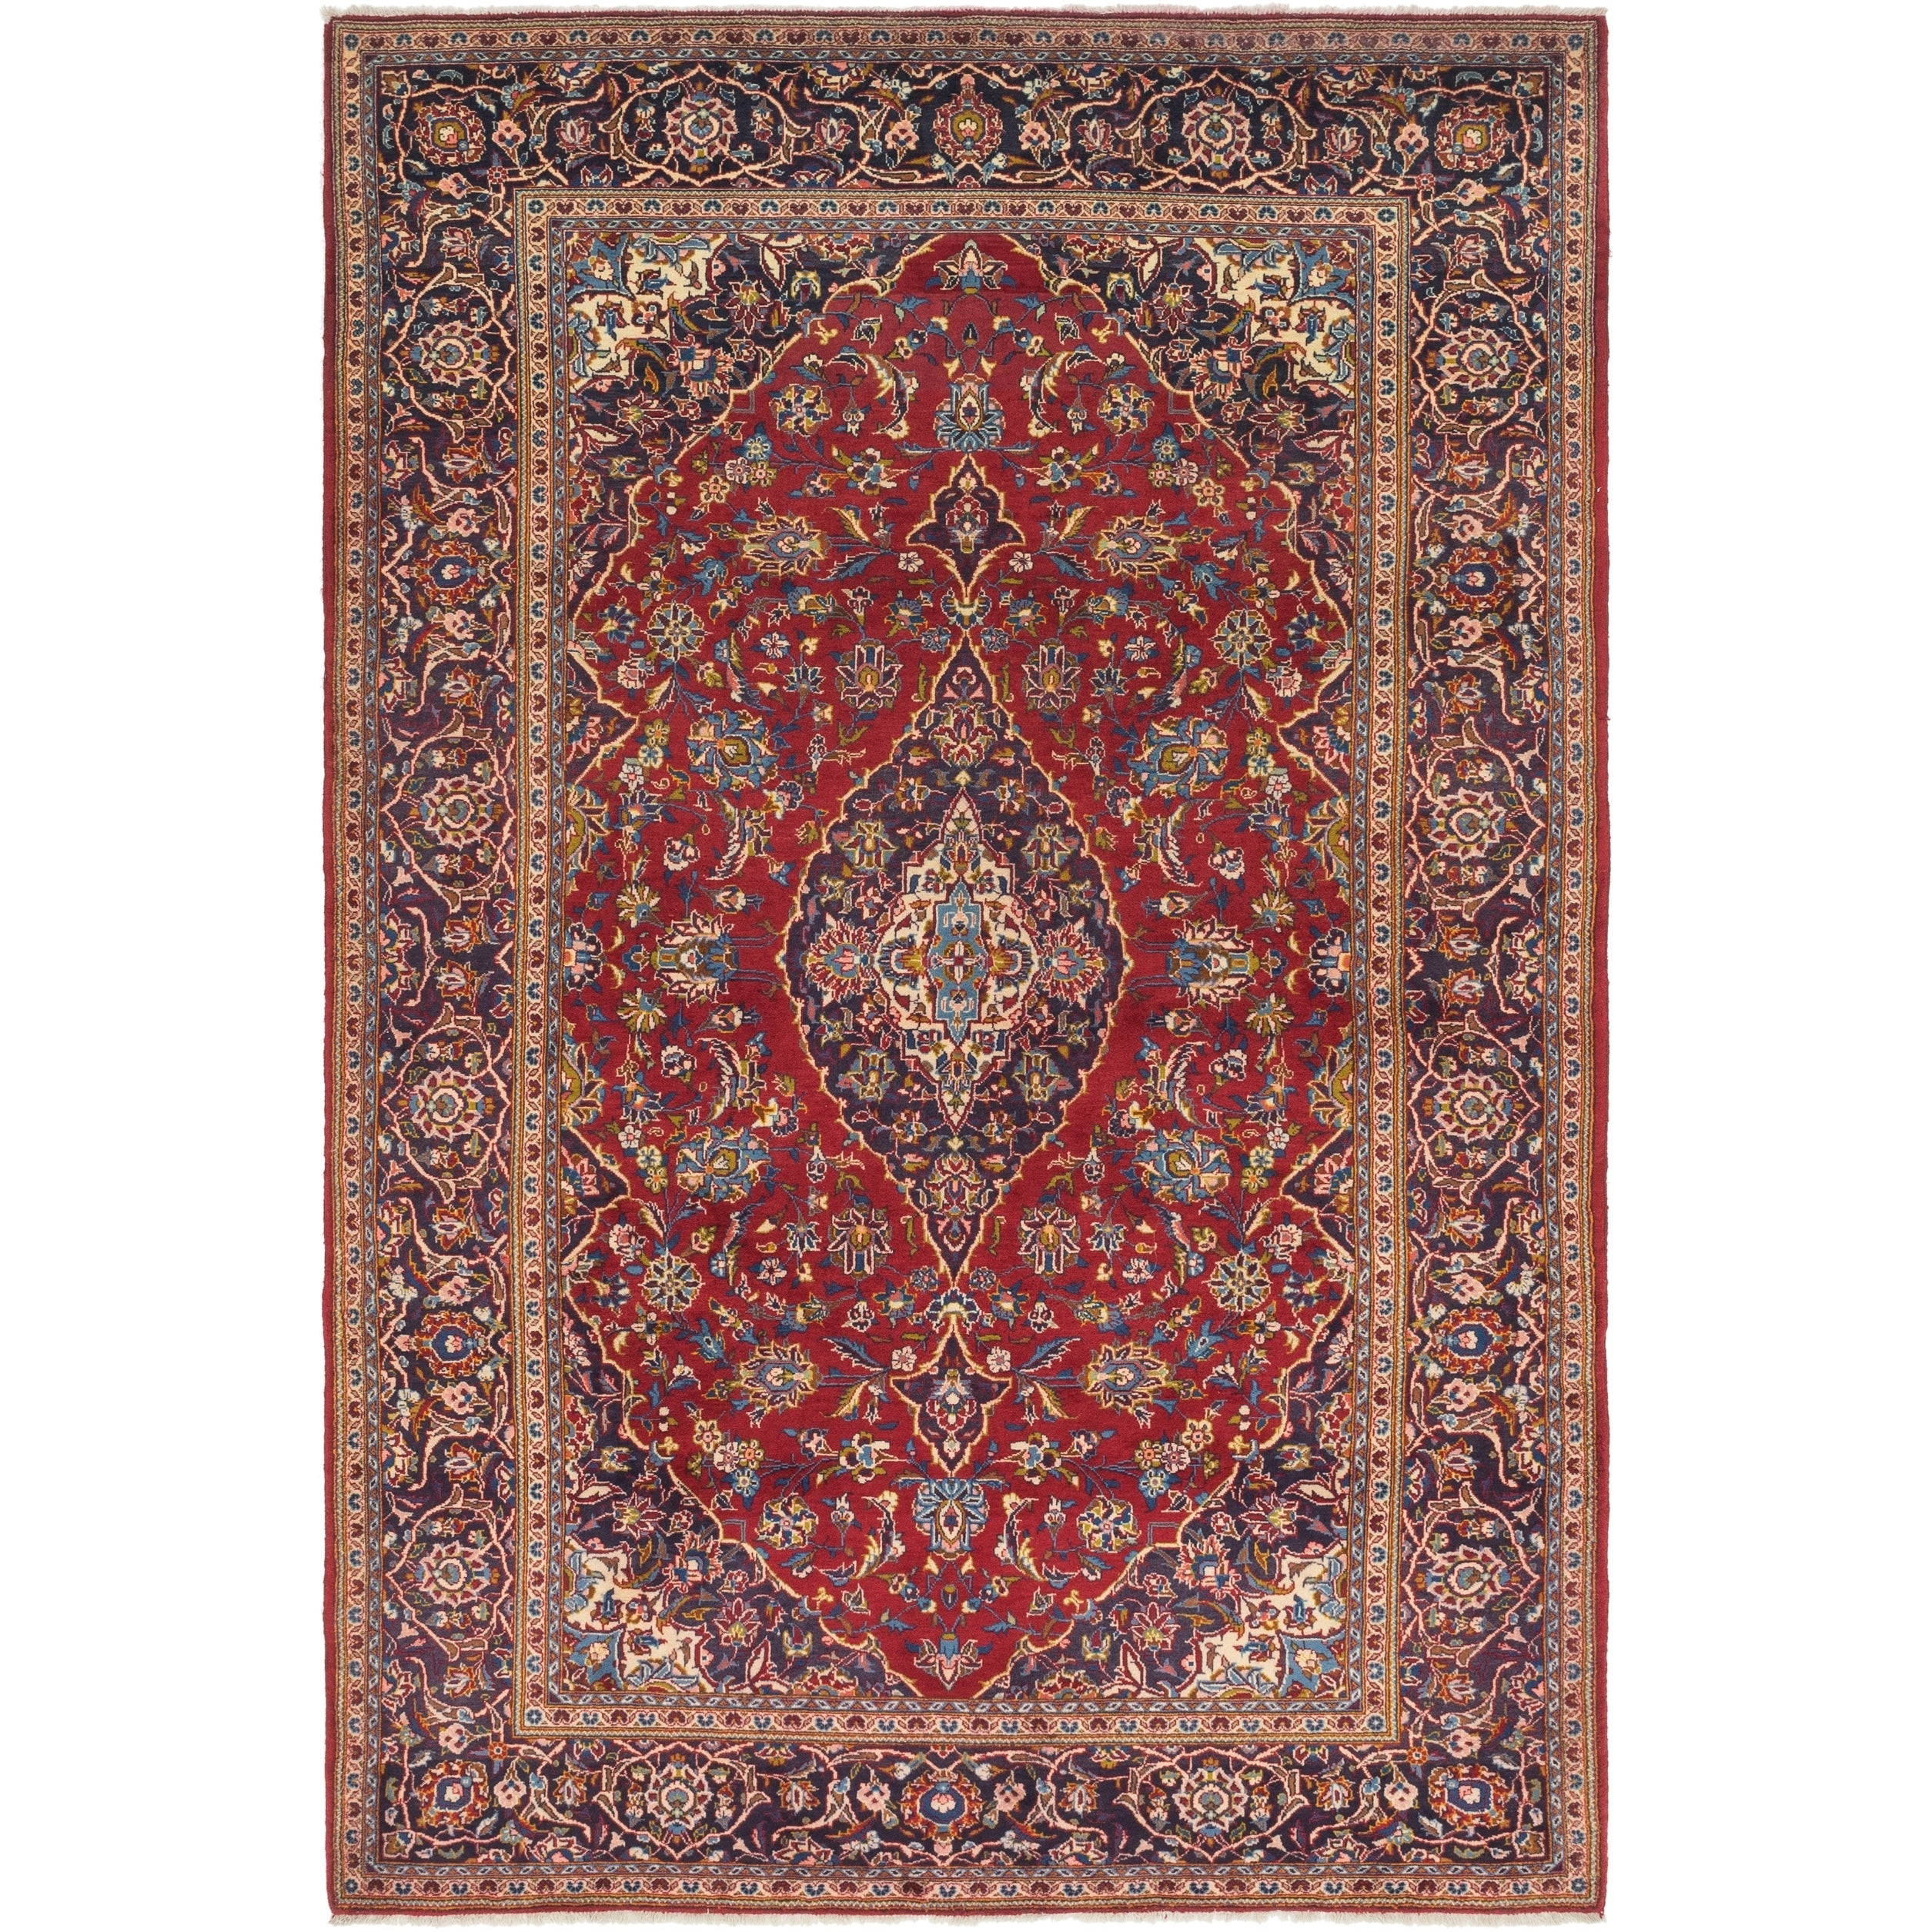 Hand Knotted Kashan Semi Antique Wool Area Rug - 7 x 10 3 (Red - 7 x 10 3)